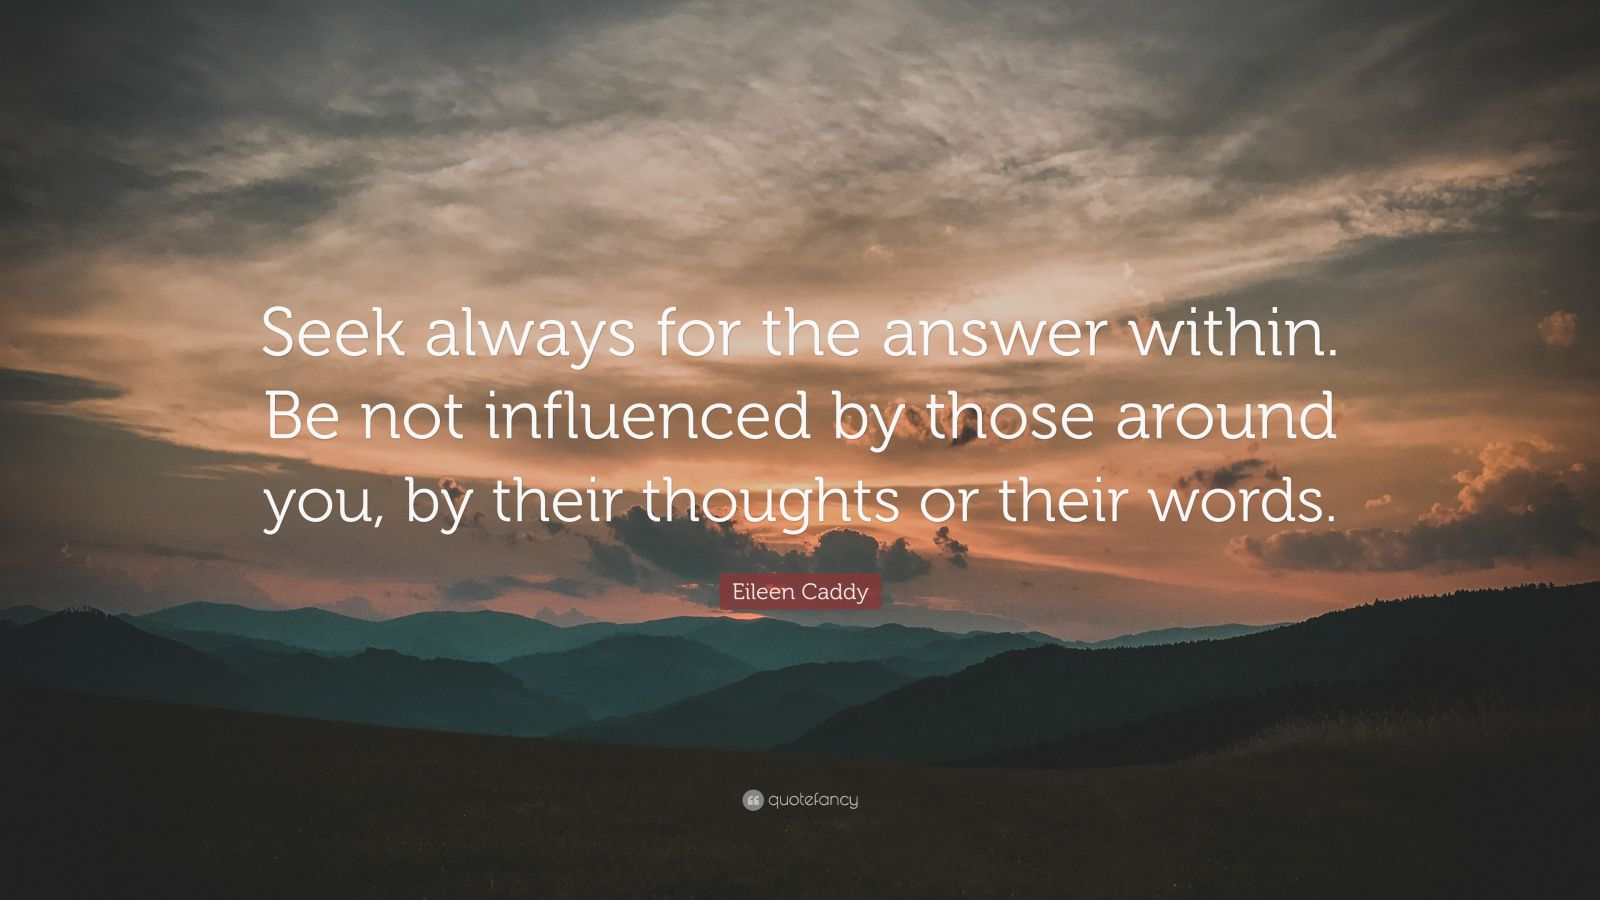 """Eileen Caddy Quote: """"Seek always for the answer within. Be not influenced by those around you, by their thoughts or their words."""""""